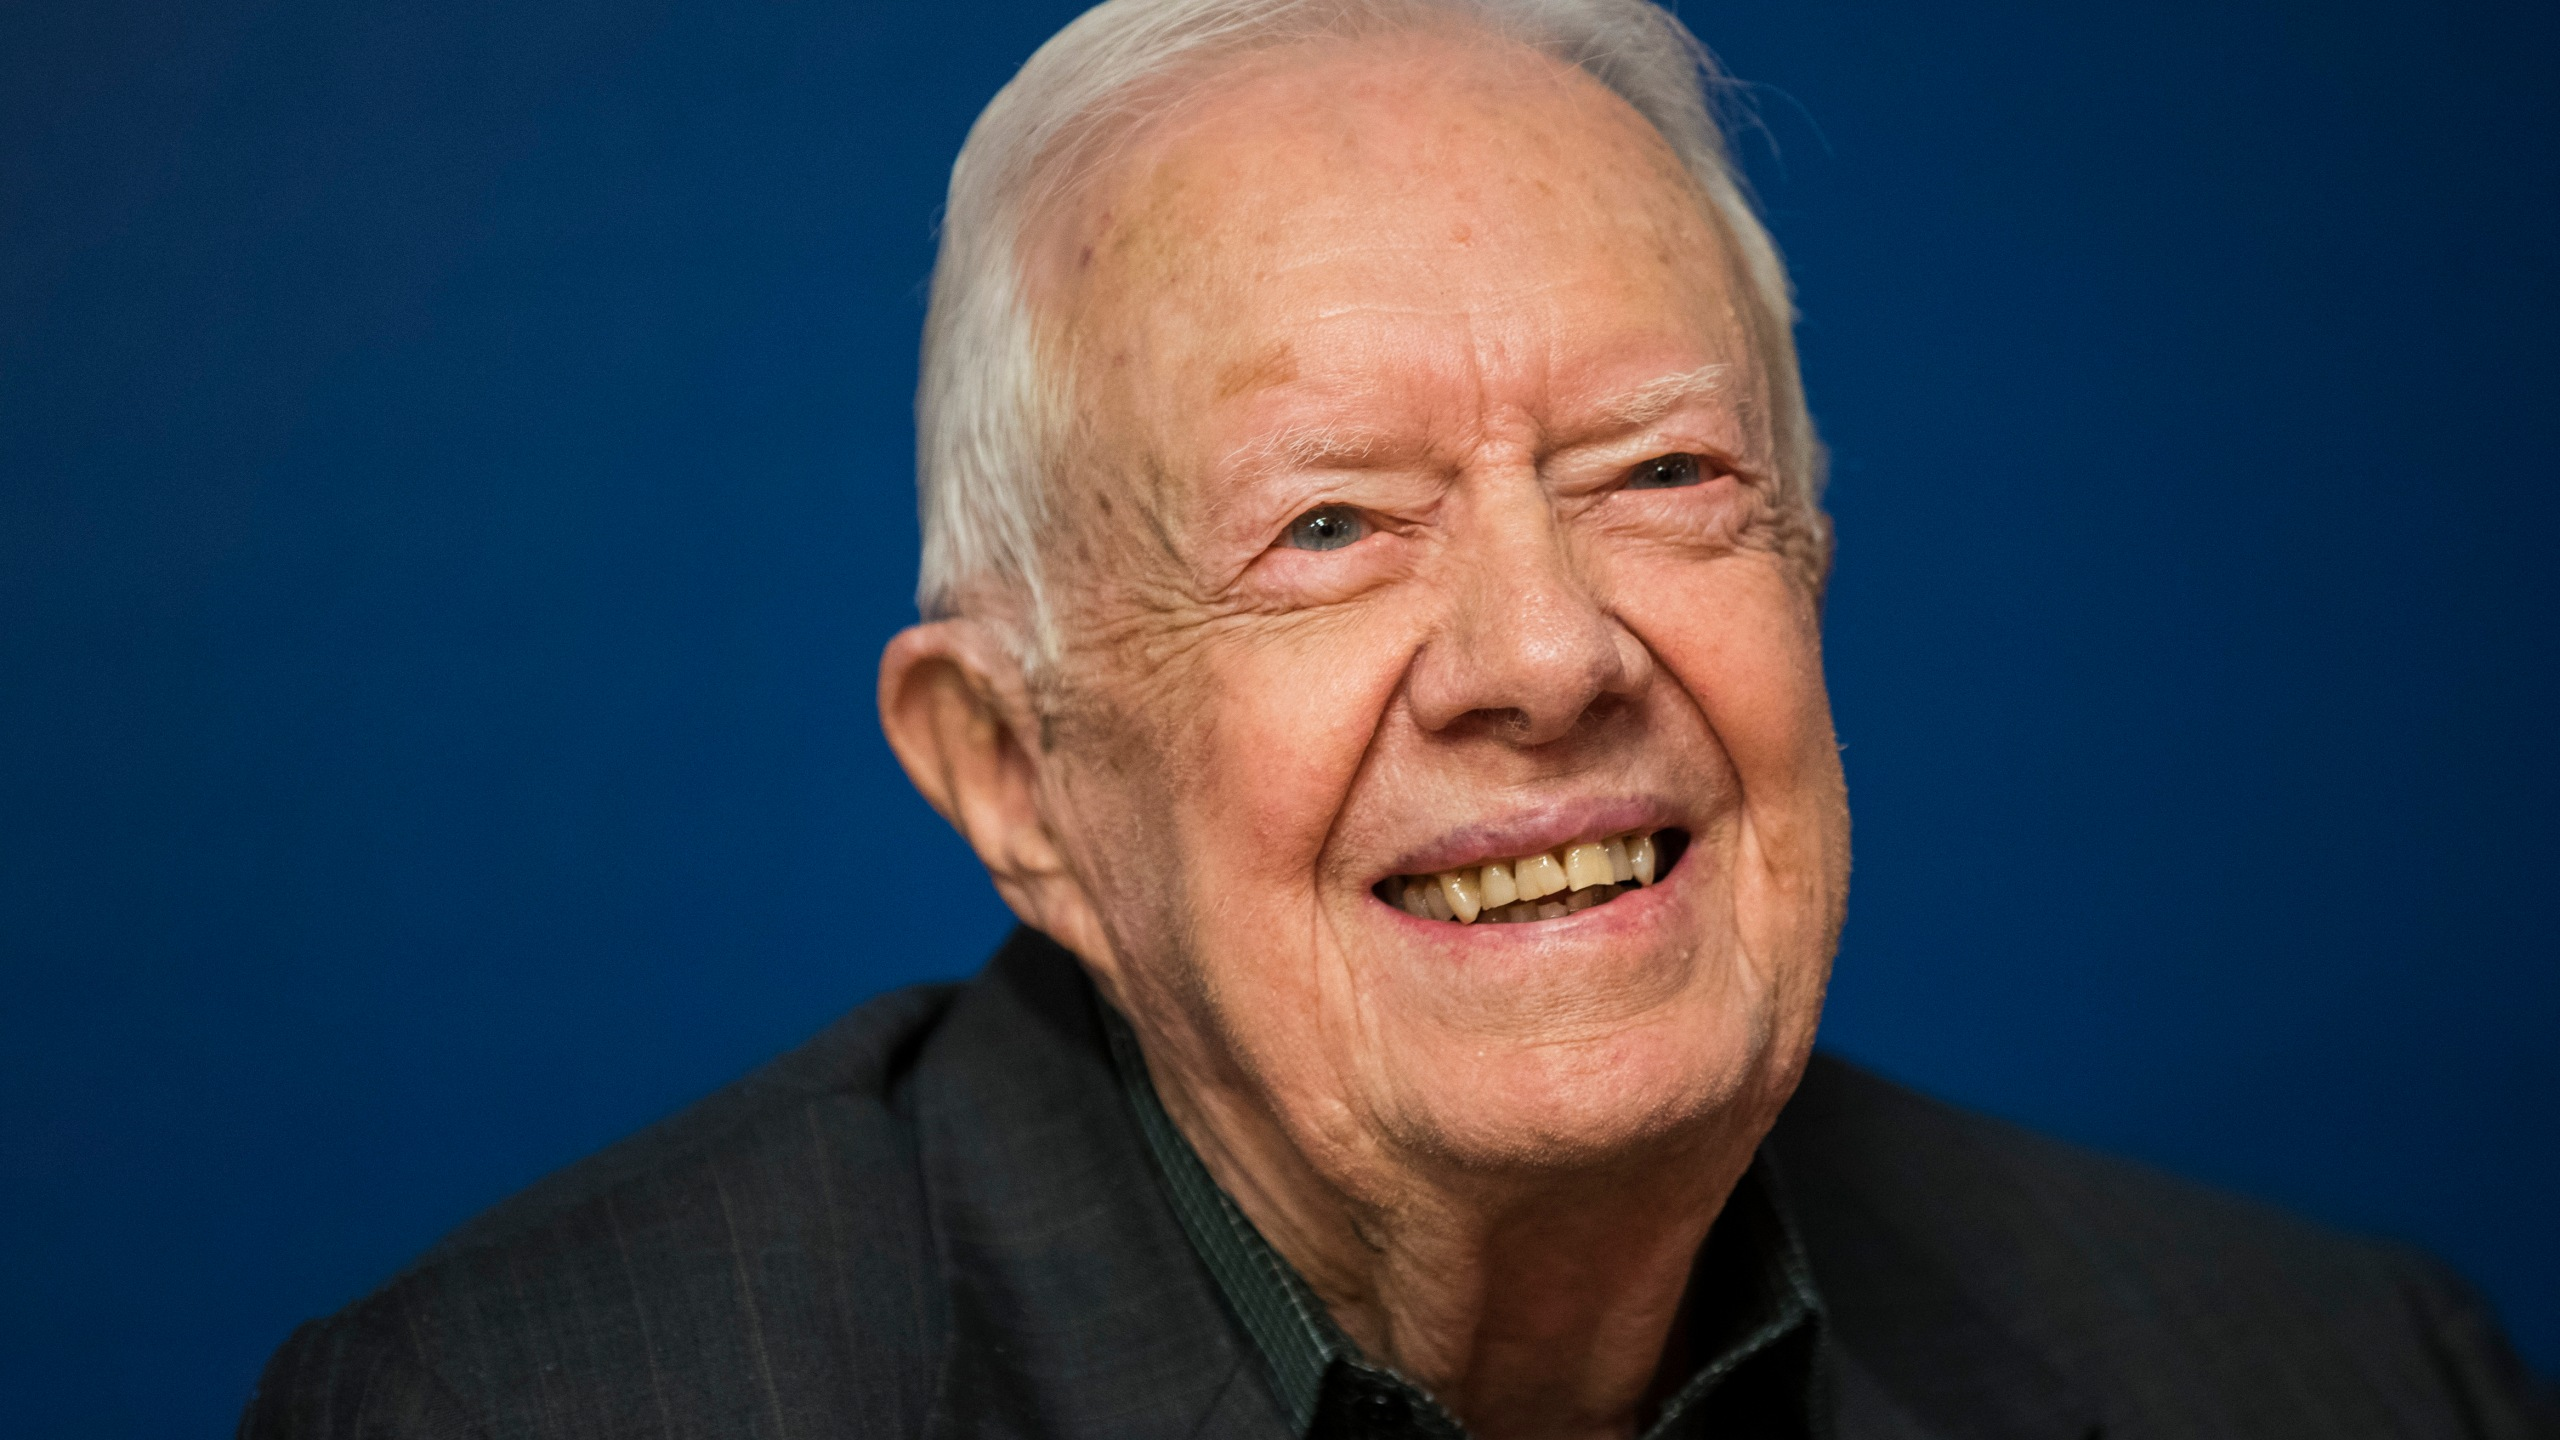 Former U.S. President Jimmy Carter smiles during a book signing event for his new book 'Faith: A Journey For All' at Barnes & Noble bookstore in Midtown Manhattan, March 26, 2018 in New York City. (Credit: Drew Angerer/Getty Images)